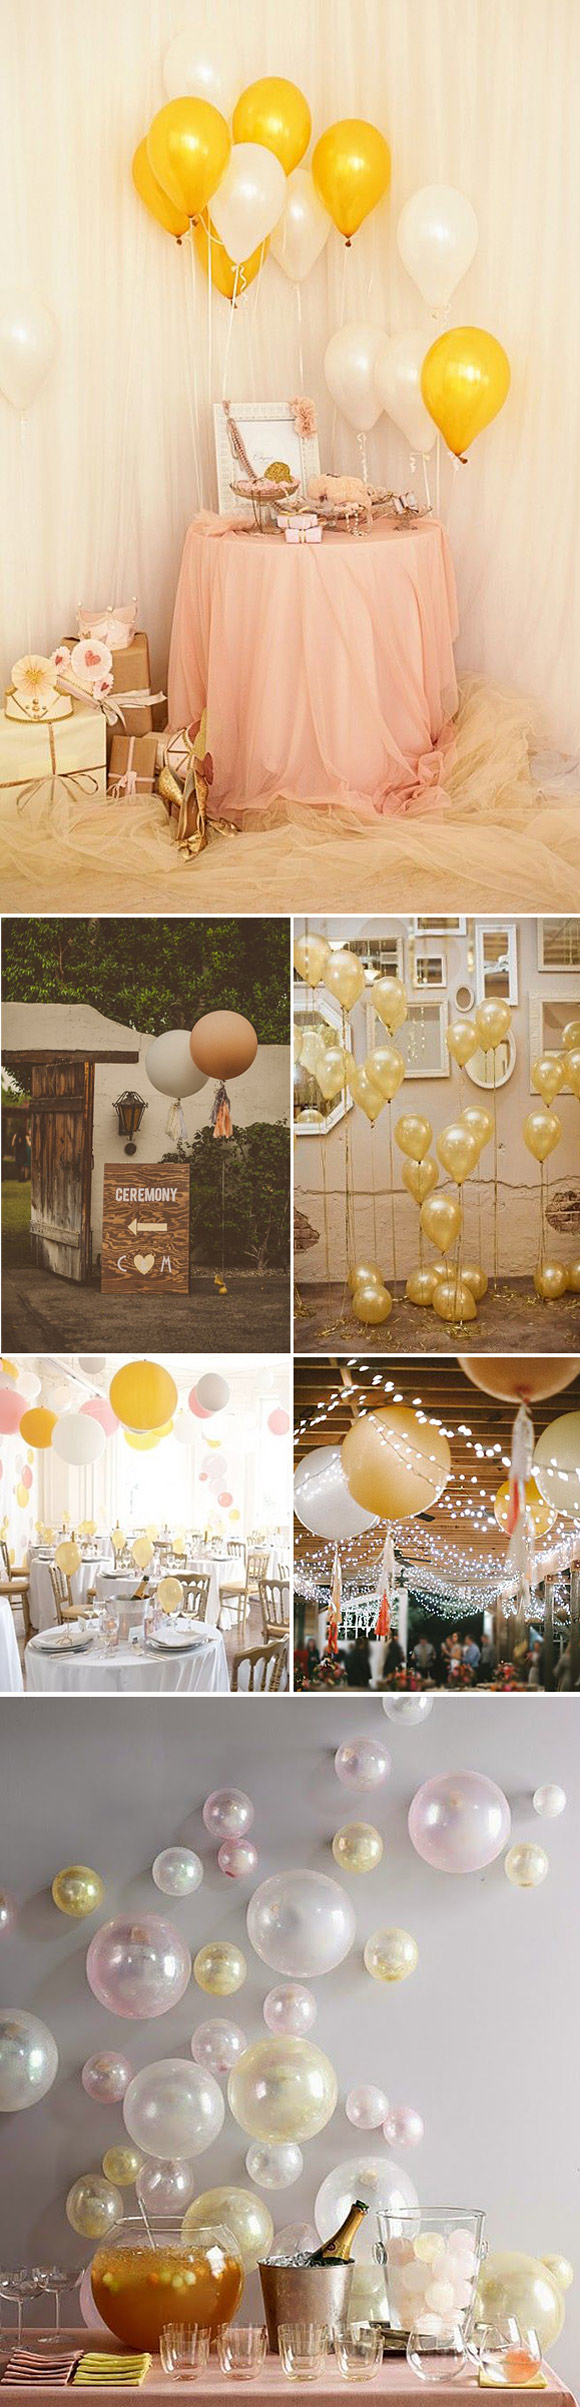 Decoracíon de bodas y eventos con globos de colores